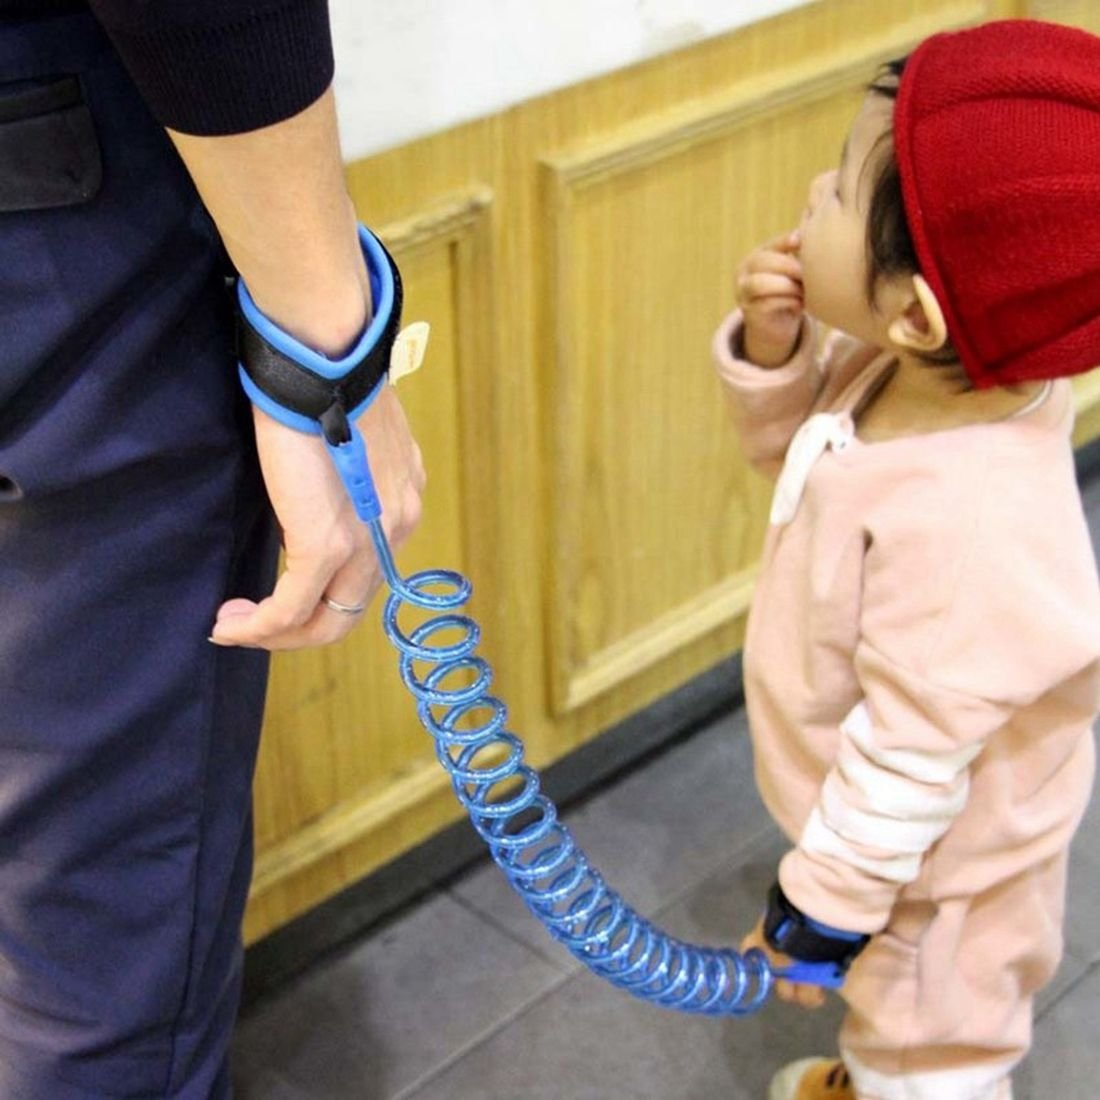 SODIAL Blue Anti-lost Traction Rope Childrens Anti-lost Belt Baby Anti-loss Seat Belt Out of The Bracelet Anti-lost Traction Rope 250 cm Length